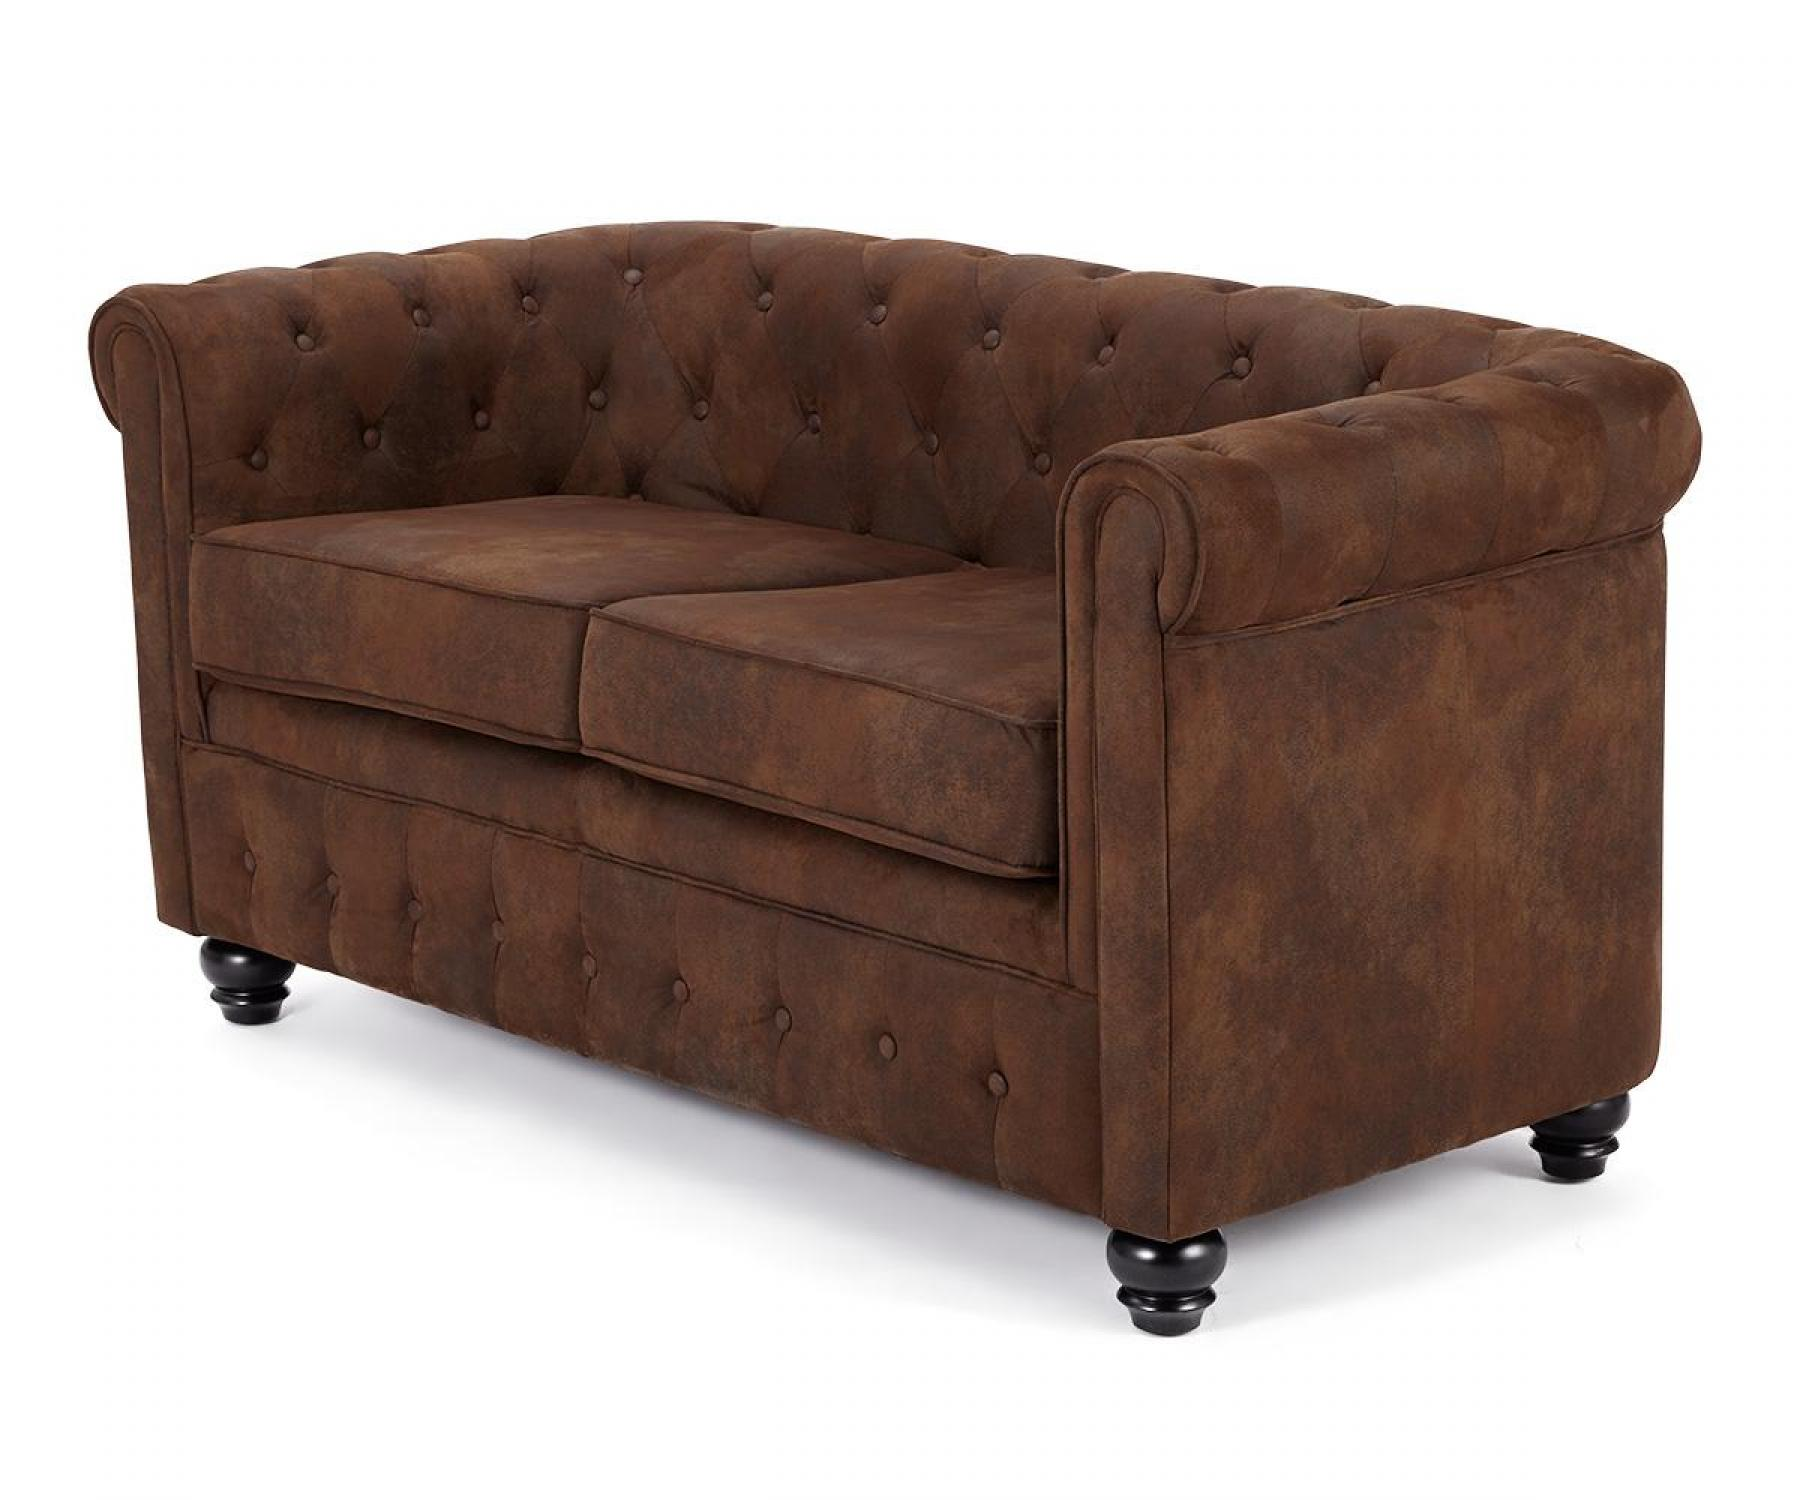 canape chesterfield cuir pas cher 28 images canape chesterfield en cuir pas cher photos. Black Bedroom Furniture Sets. Home Design Ideas